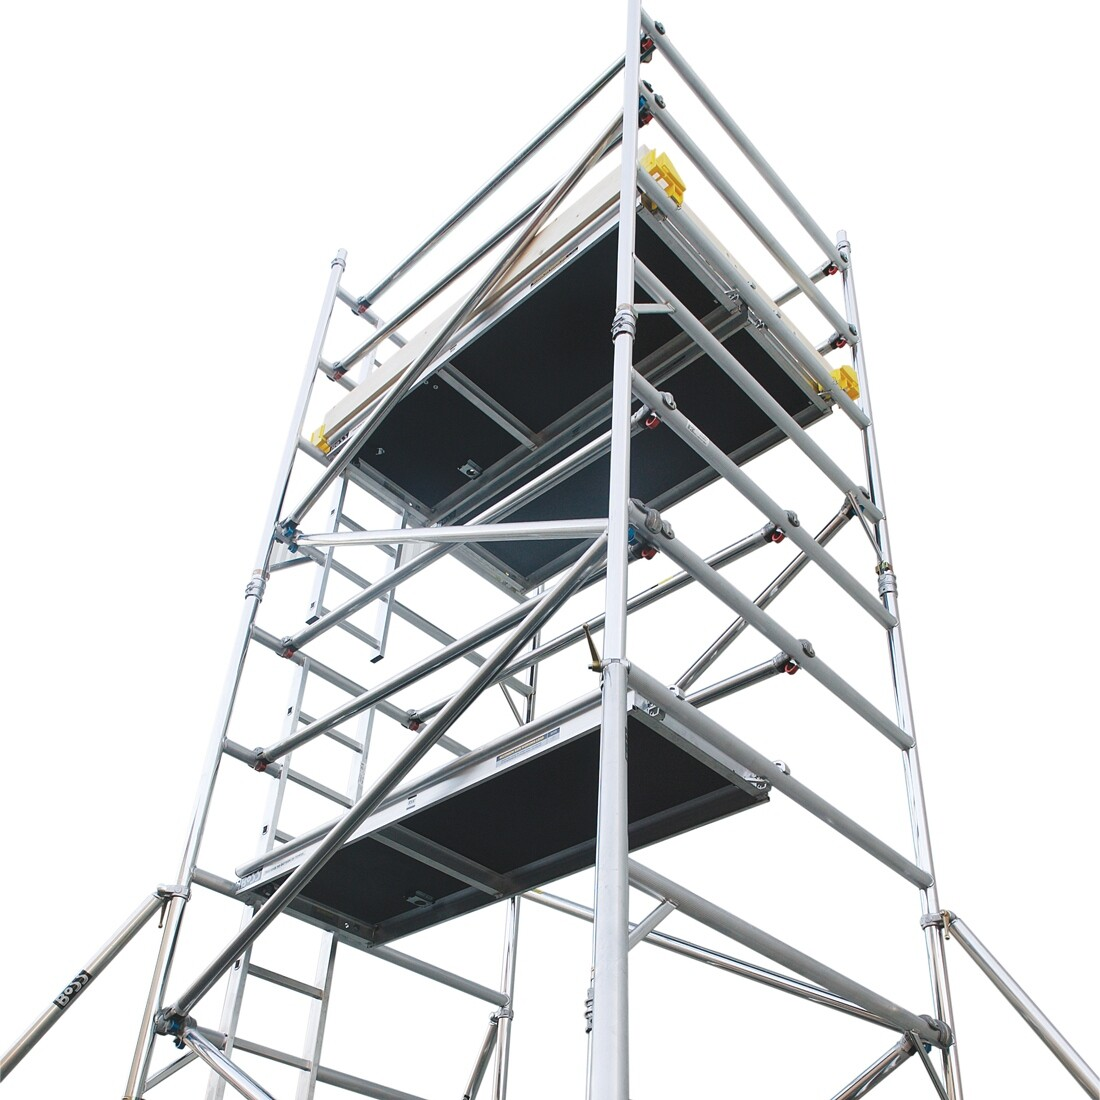 Mobile Tower Double Width - 1.4m wide x 1.8m long x 8.4m high